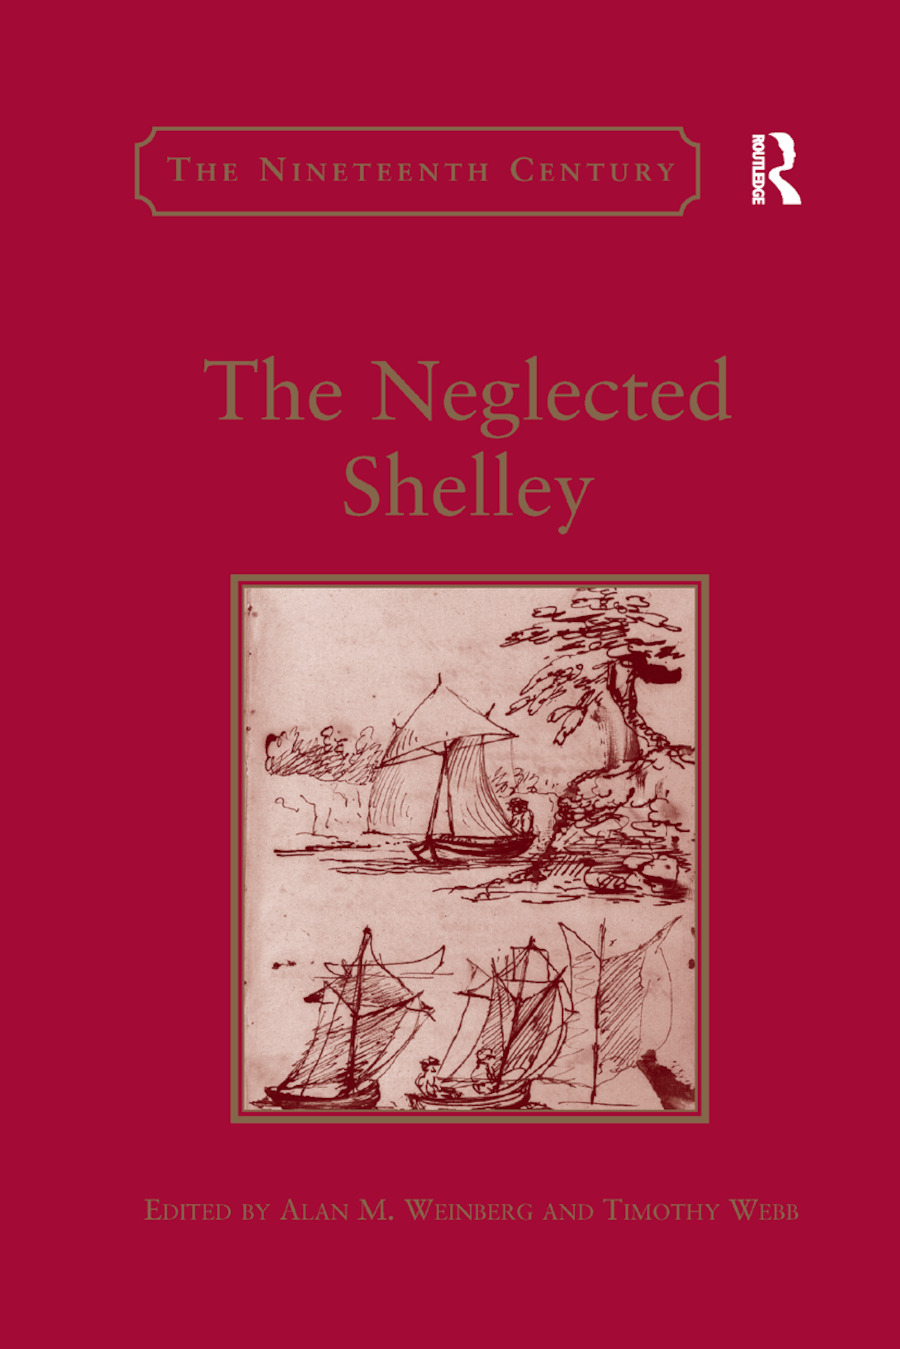 The Neglected Shelley